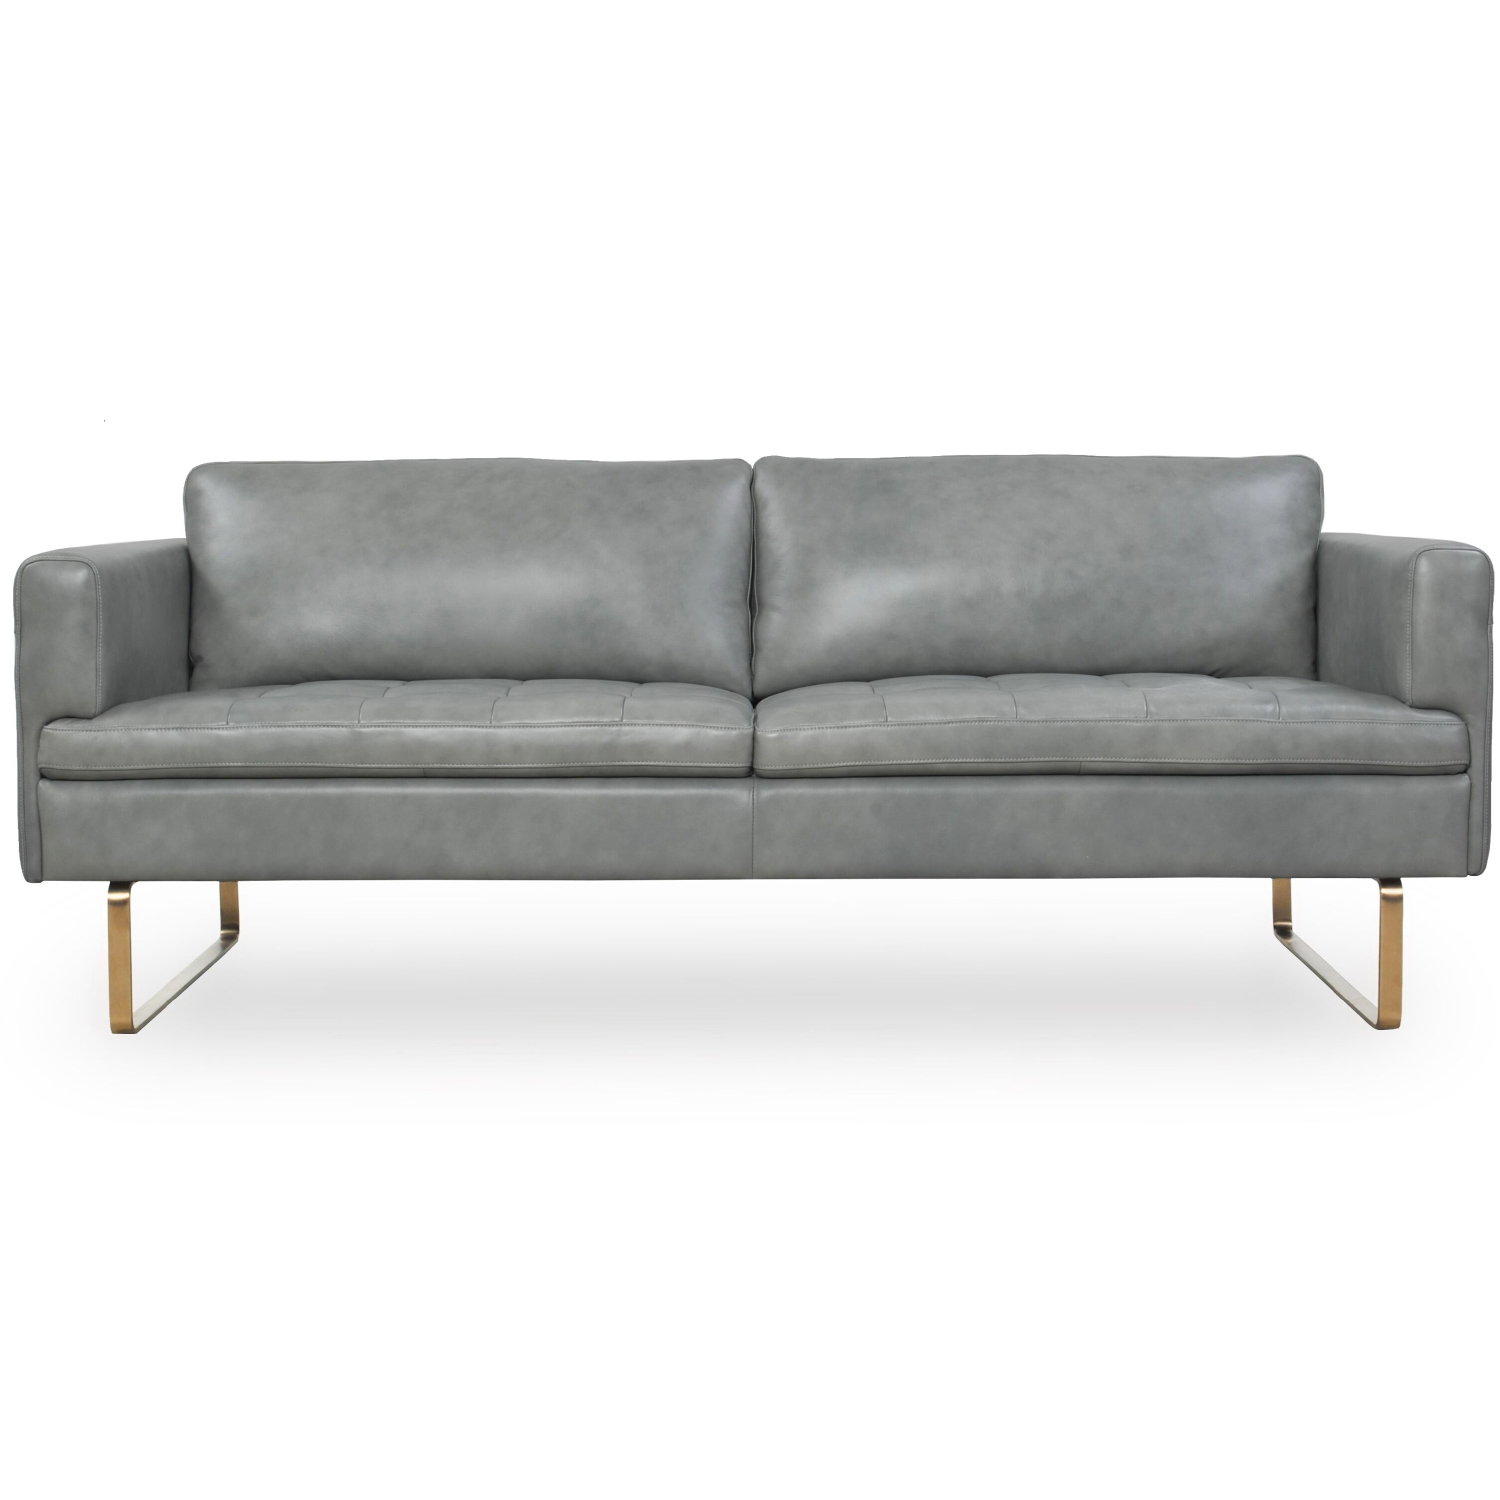 Strange Frensen Sofa In Cloud Grey Top Grain Leather On Copper Legs By Moroni Fine Leather Furniture Machost Co Dining Chair Design Ideas Machostcouk